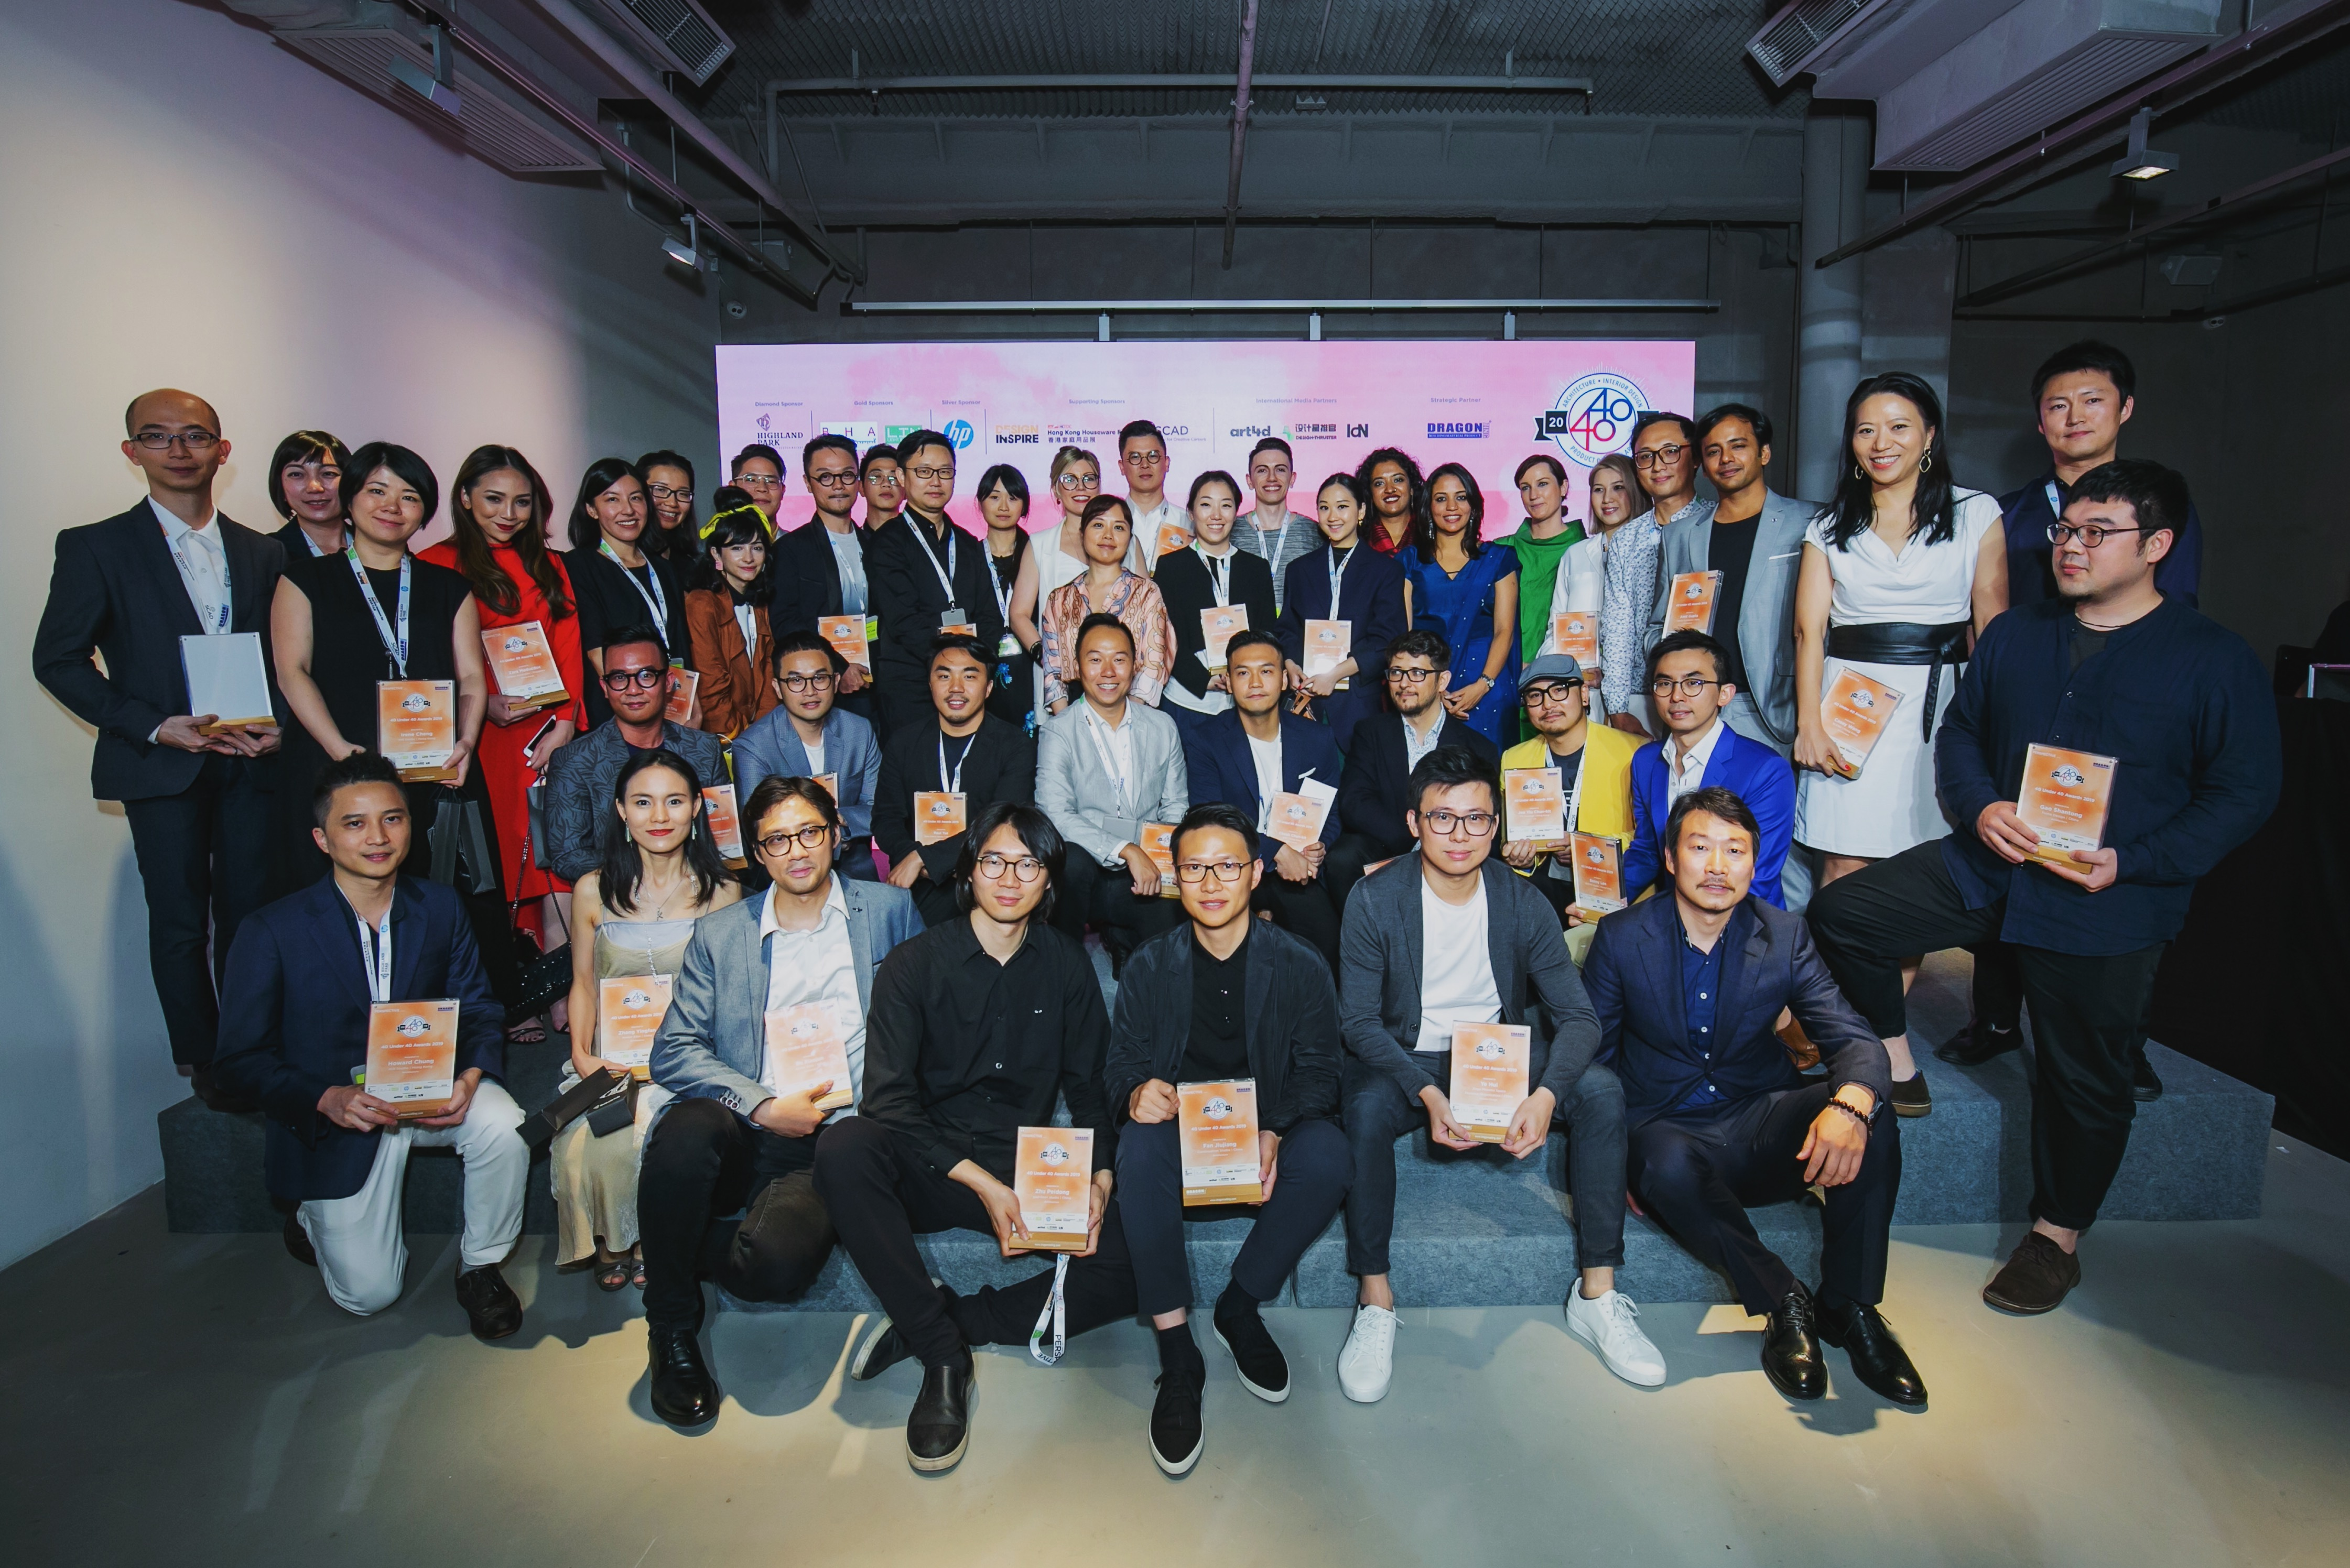 40 UNDER 40 AWARDS 2019 WINNERS